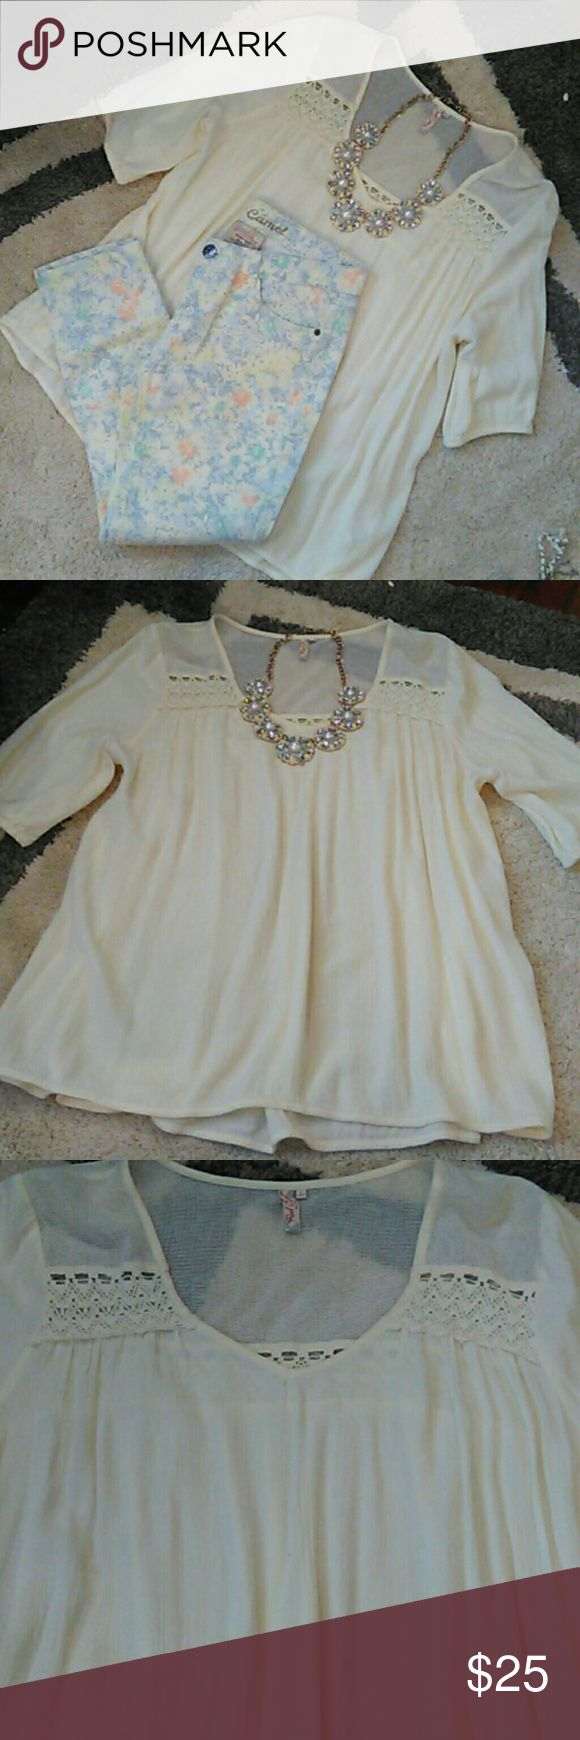 Babydoll hi/lo thin fabric tunic/ Belk's stores This top is absolutely gorgeous!! So cute!! Pics describe item. I will include necklace for additional $20. The necklace is a statement necklace paid $68 for. It's a heavy piece. Red Camel Tops Tunics